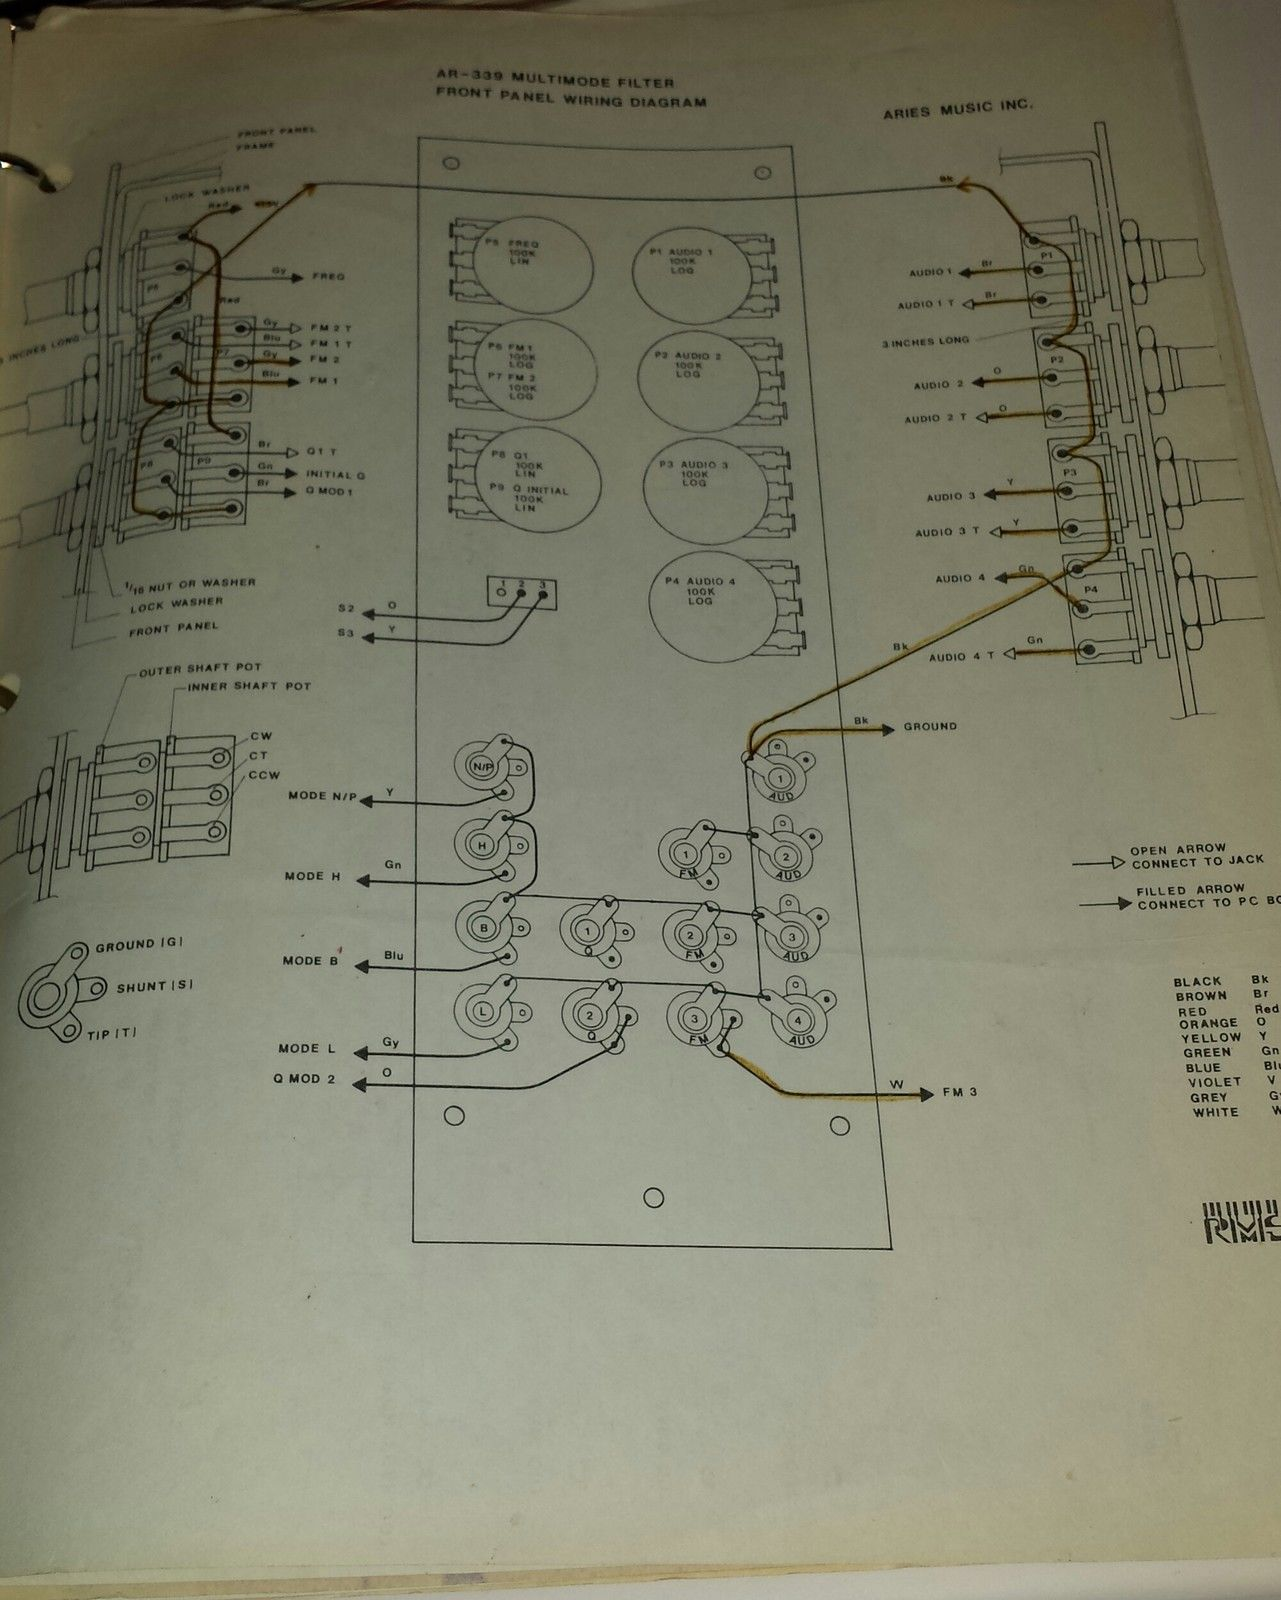 Tremendous Matrixsynth Aries Modular Synthesizer Owners Manual With Blueprints Wiring Cloud Strefoxcilixyz